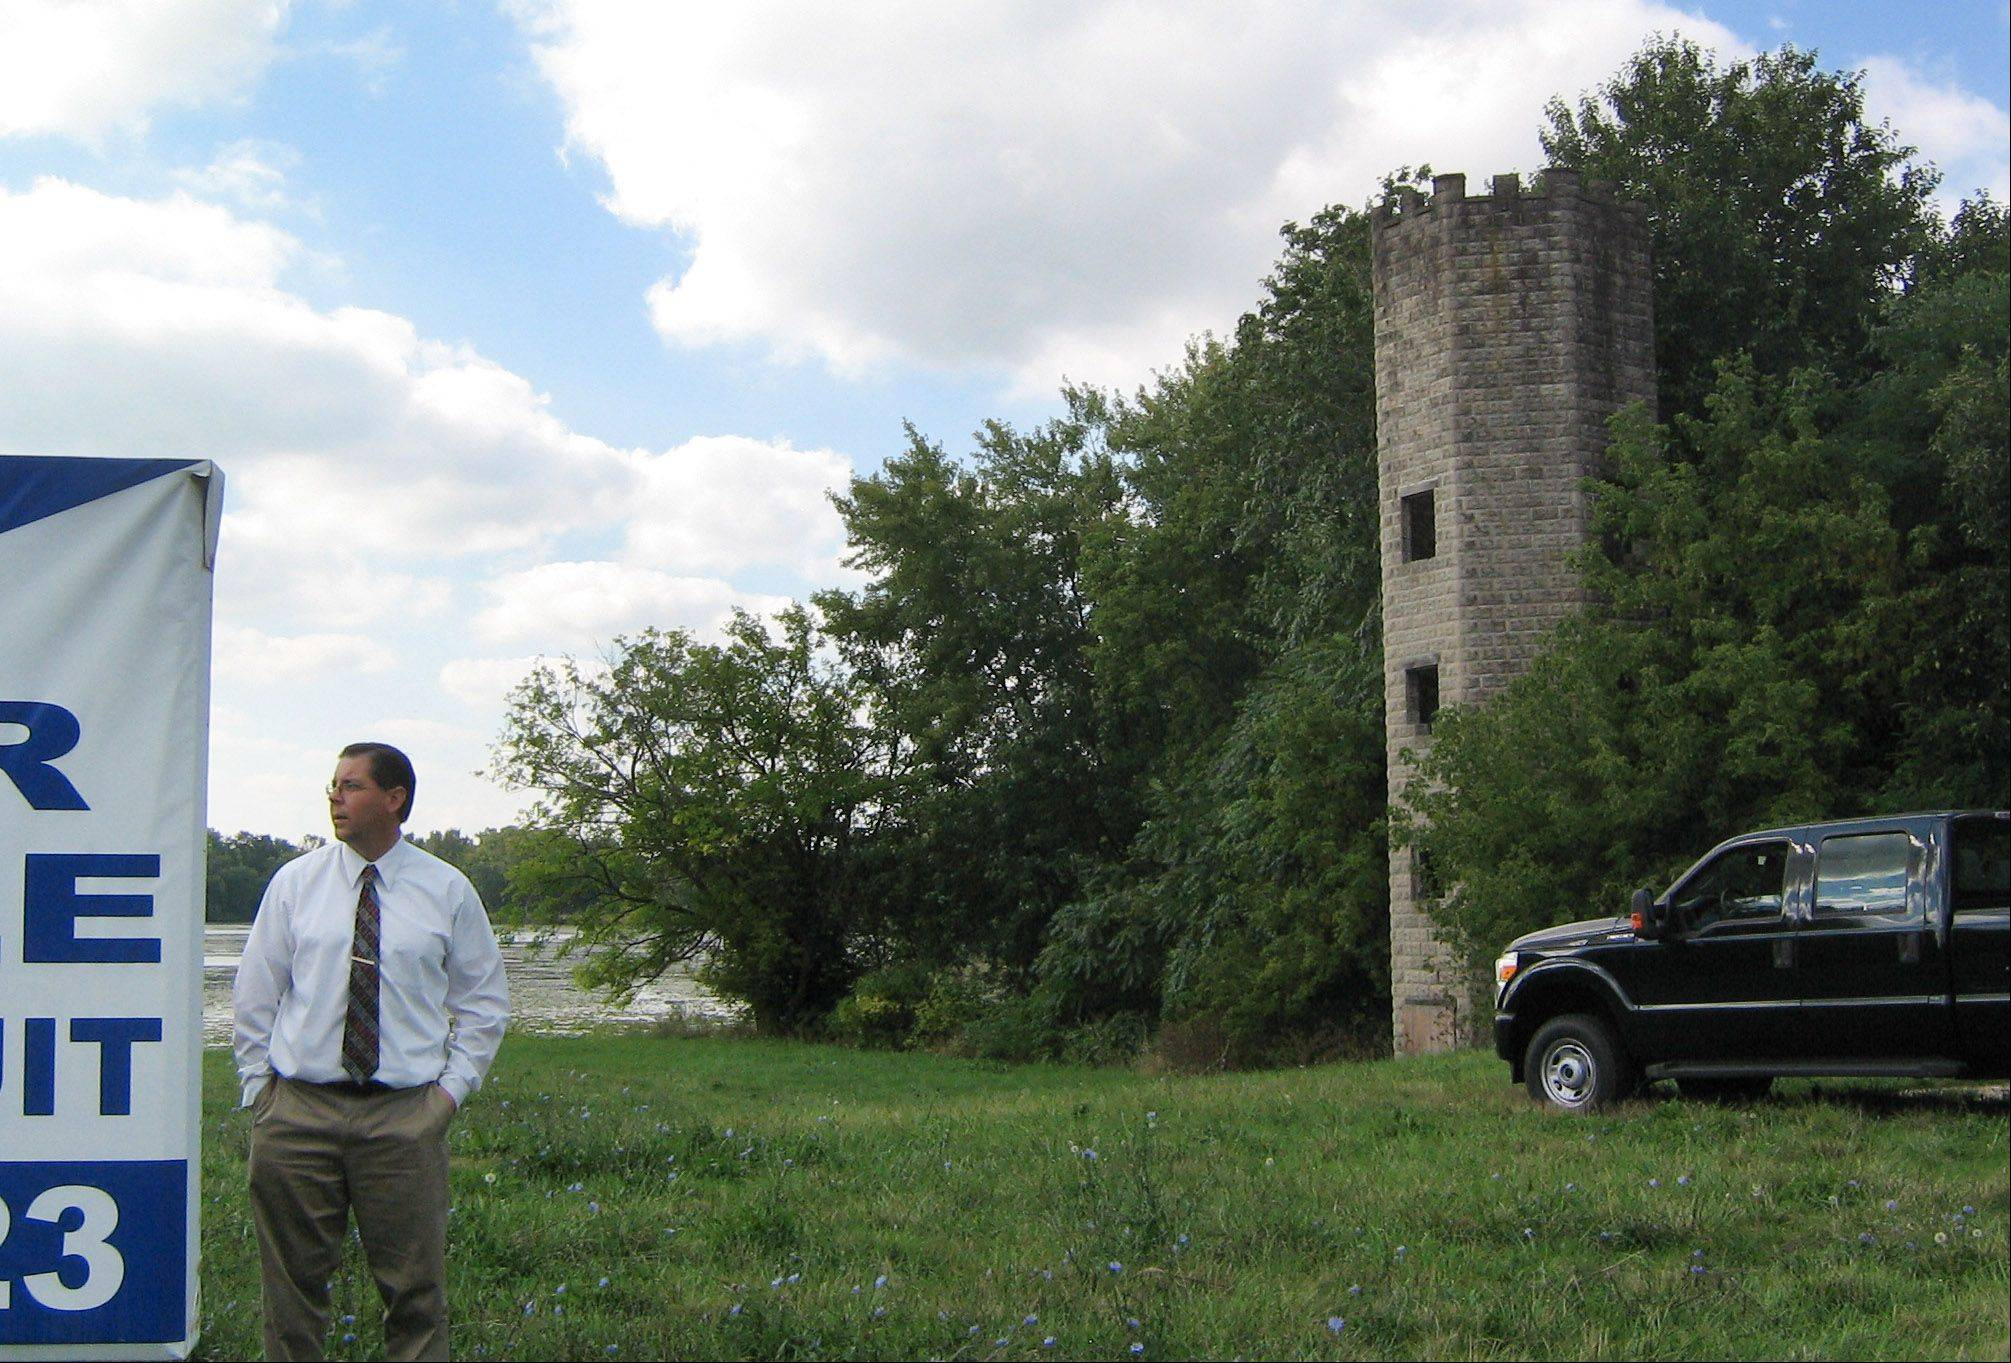 Matt Dabrowski, director of community and economic development, looks over property along Lily Lake and Route 120. The Lakemoor village board is considering buying the land and restoring a tower built in the 1920s or 1930s.